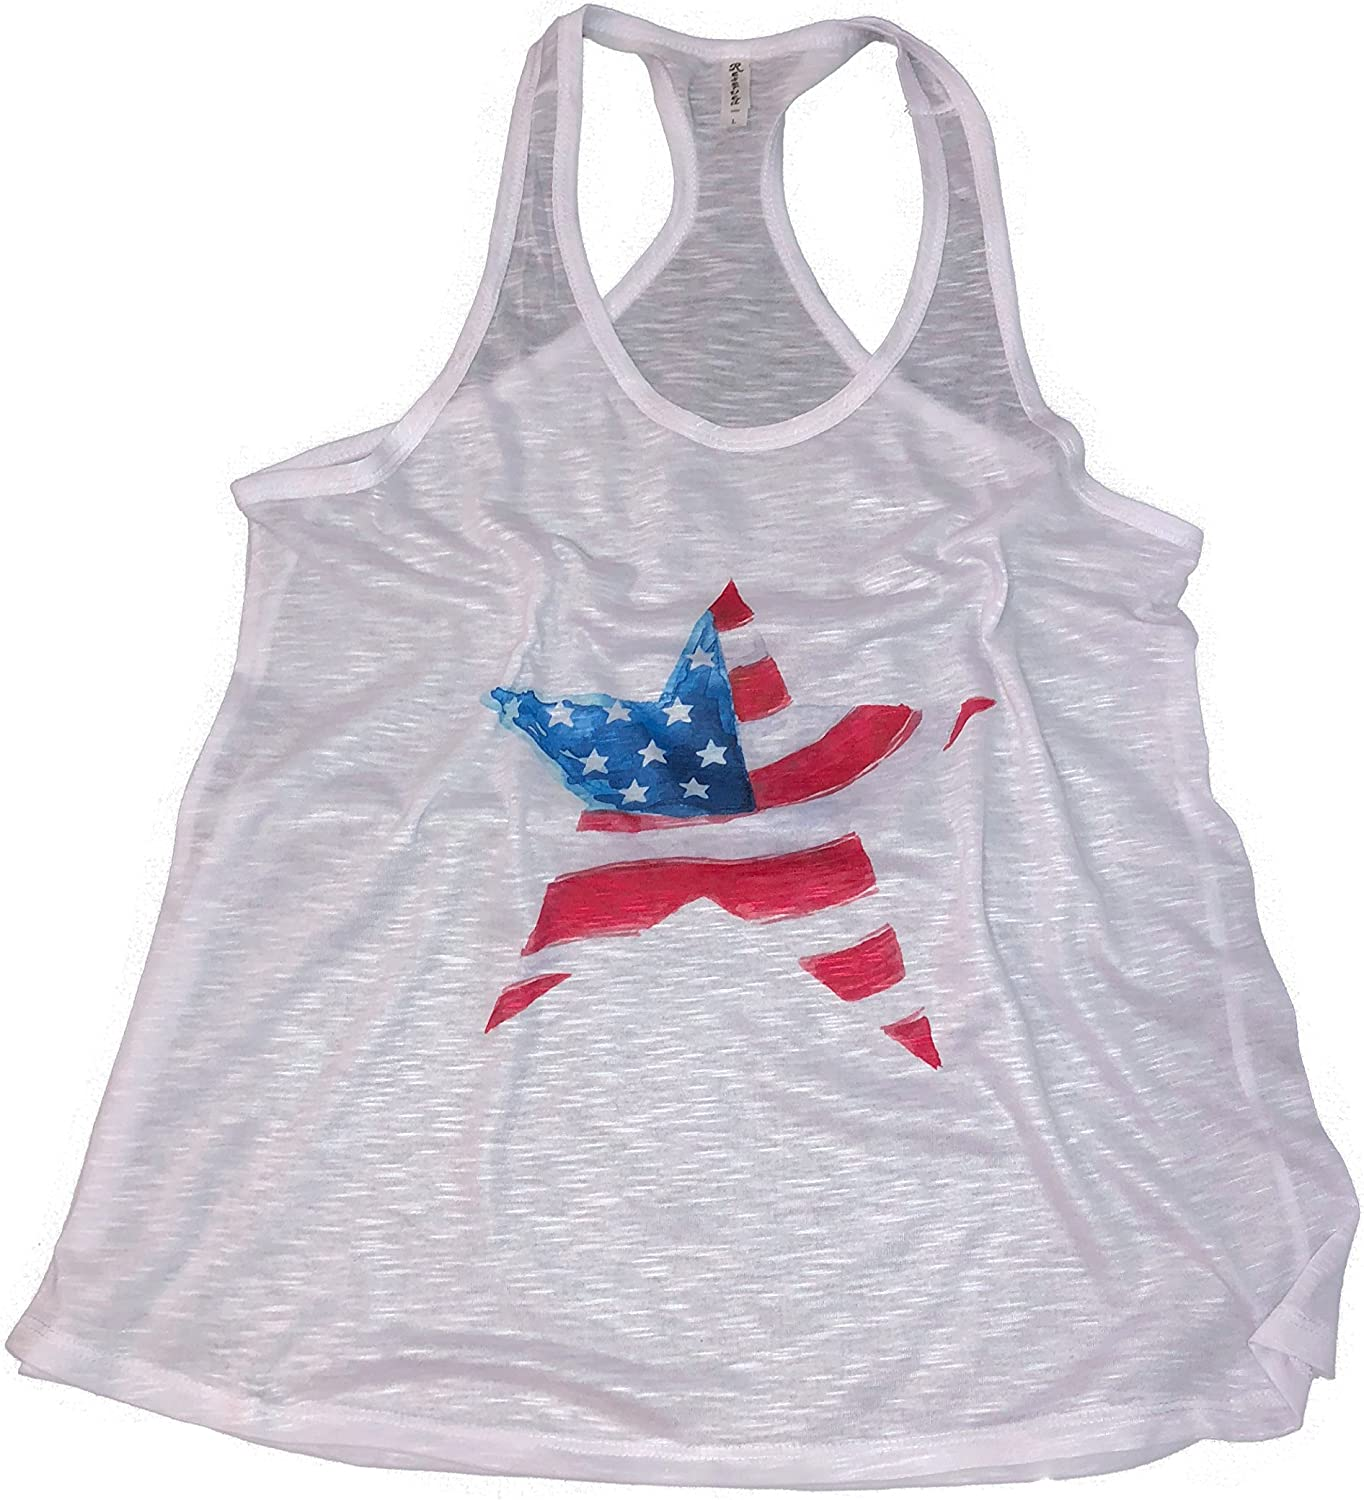 Devious Apparel 4th of July Patriotic USA Water color Workout Flowy Sublimated Women's Star and Stripes